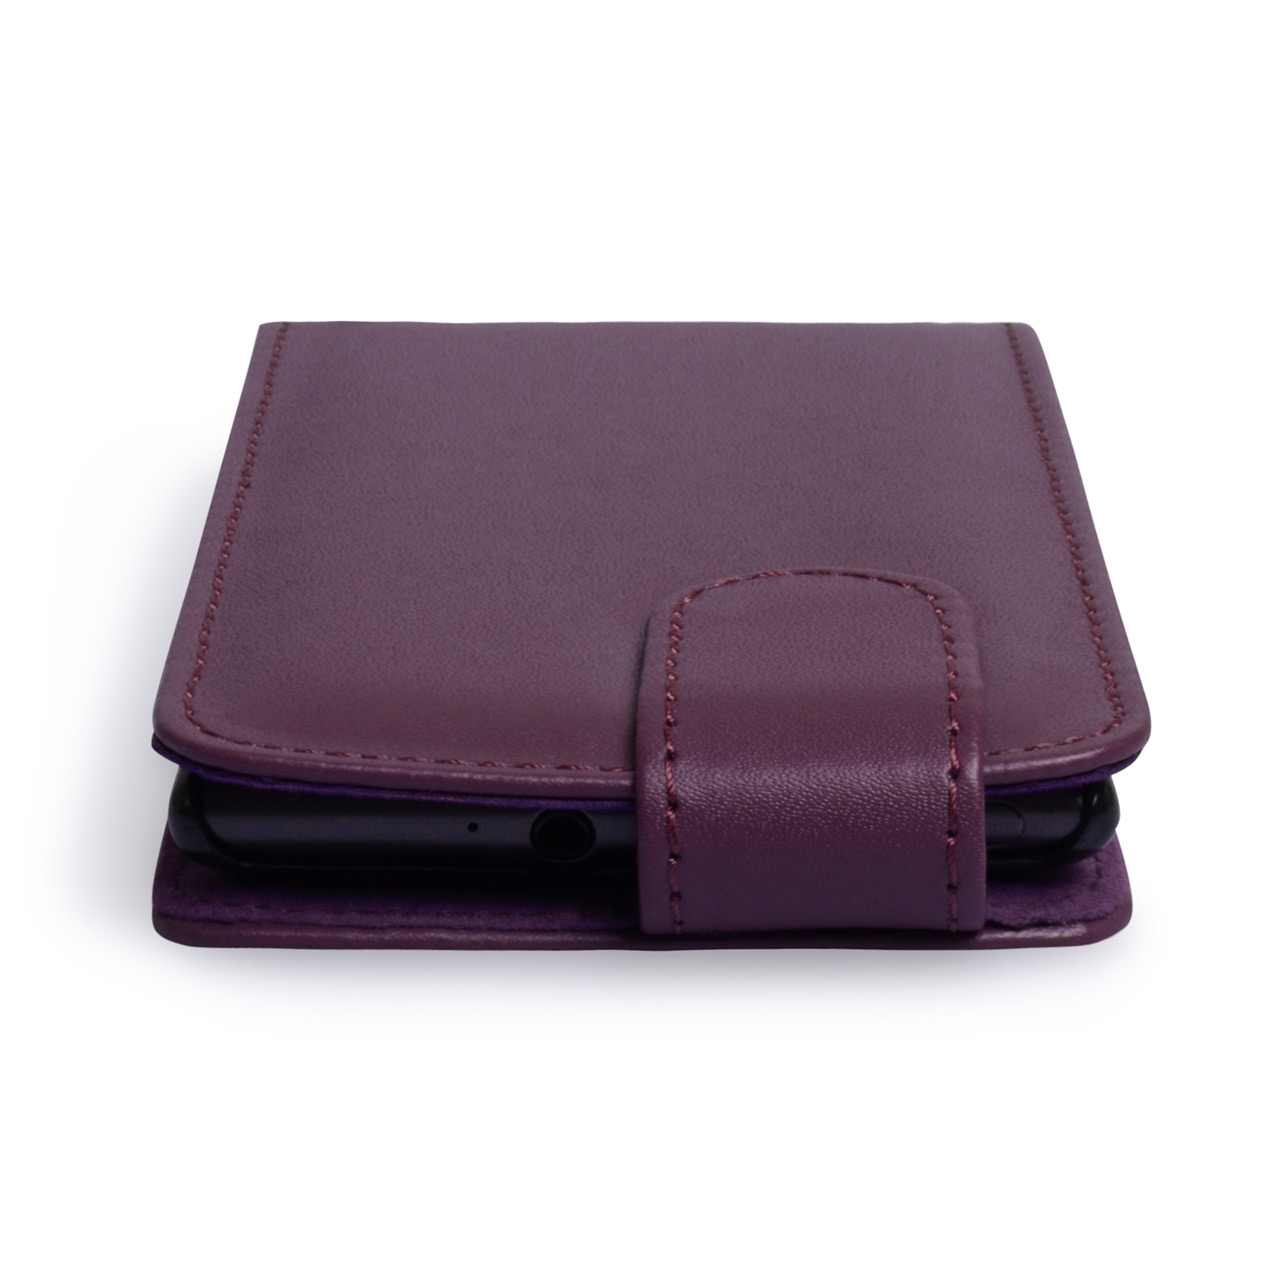 YouSave Accessories Nokia Lumia 925 Leather Effect Flip Case - Purple